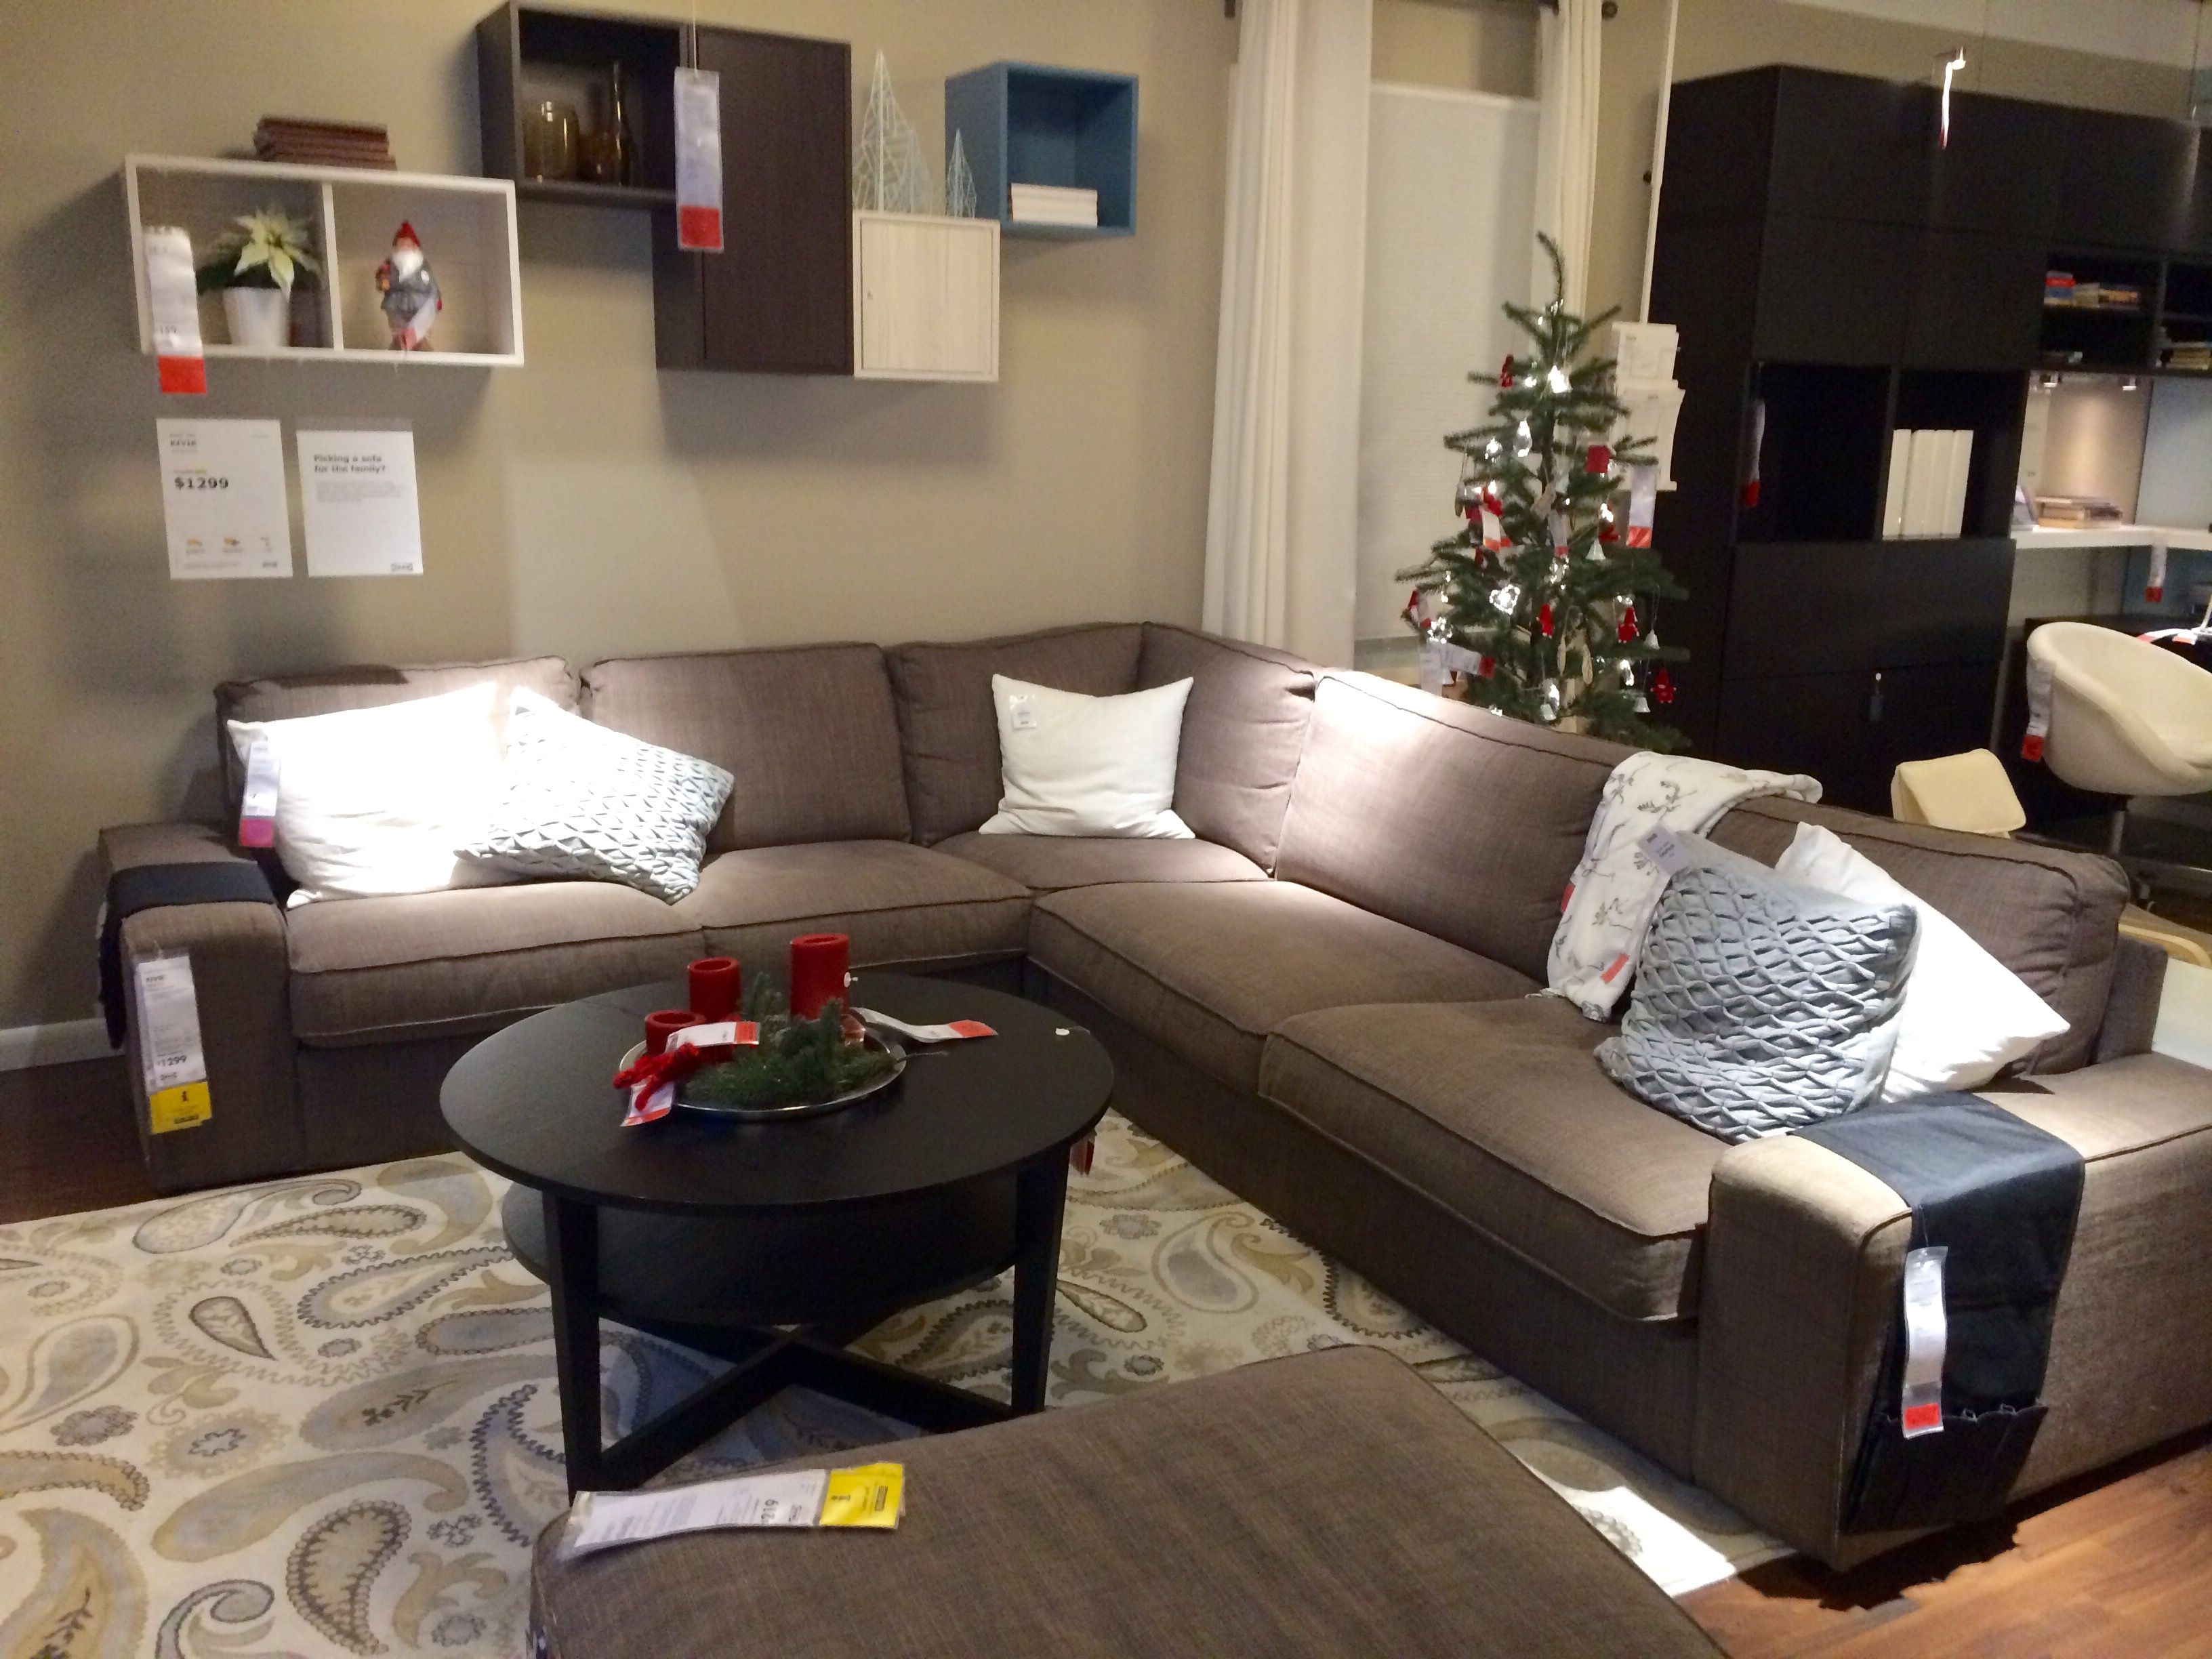 Decorating Living Room With Sectional Sofa: IKEA KIVIK Sectional Sofa.